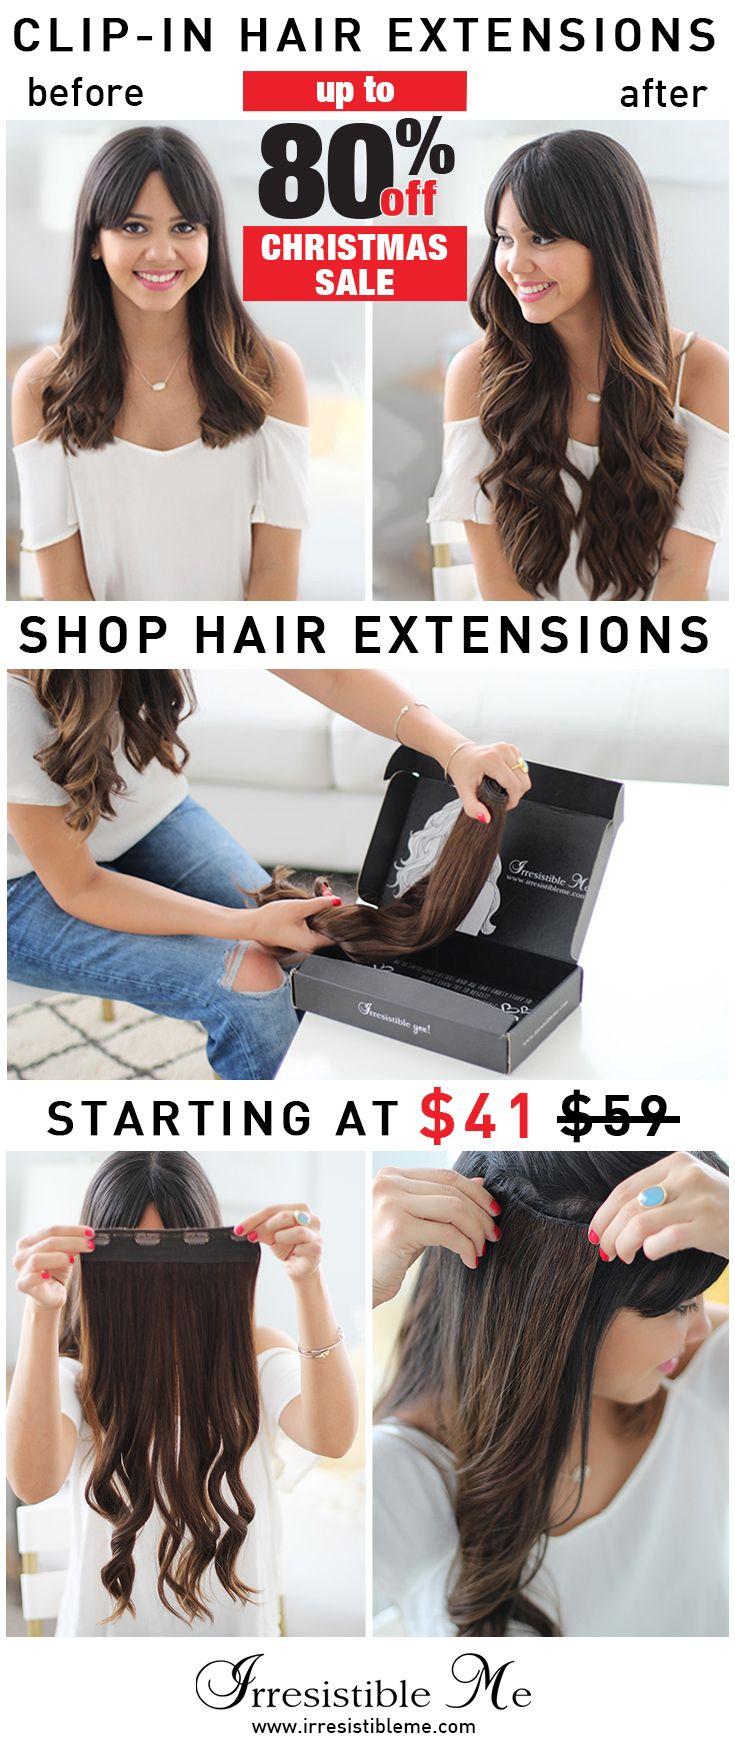 487 best irresistible me clip in hair extensions images on make a dramatic hairstyle change with irresistible me 100 human remy clip in hair extensions pmusecretfo Image collections